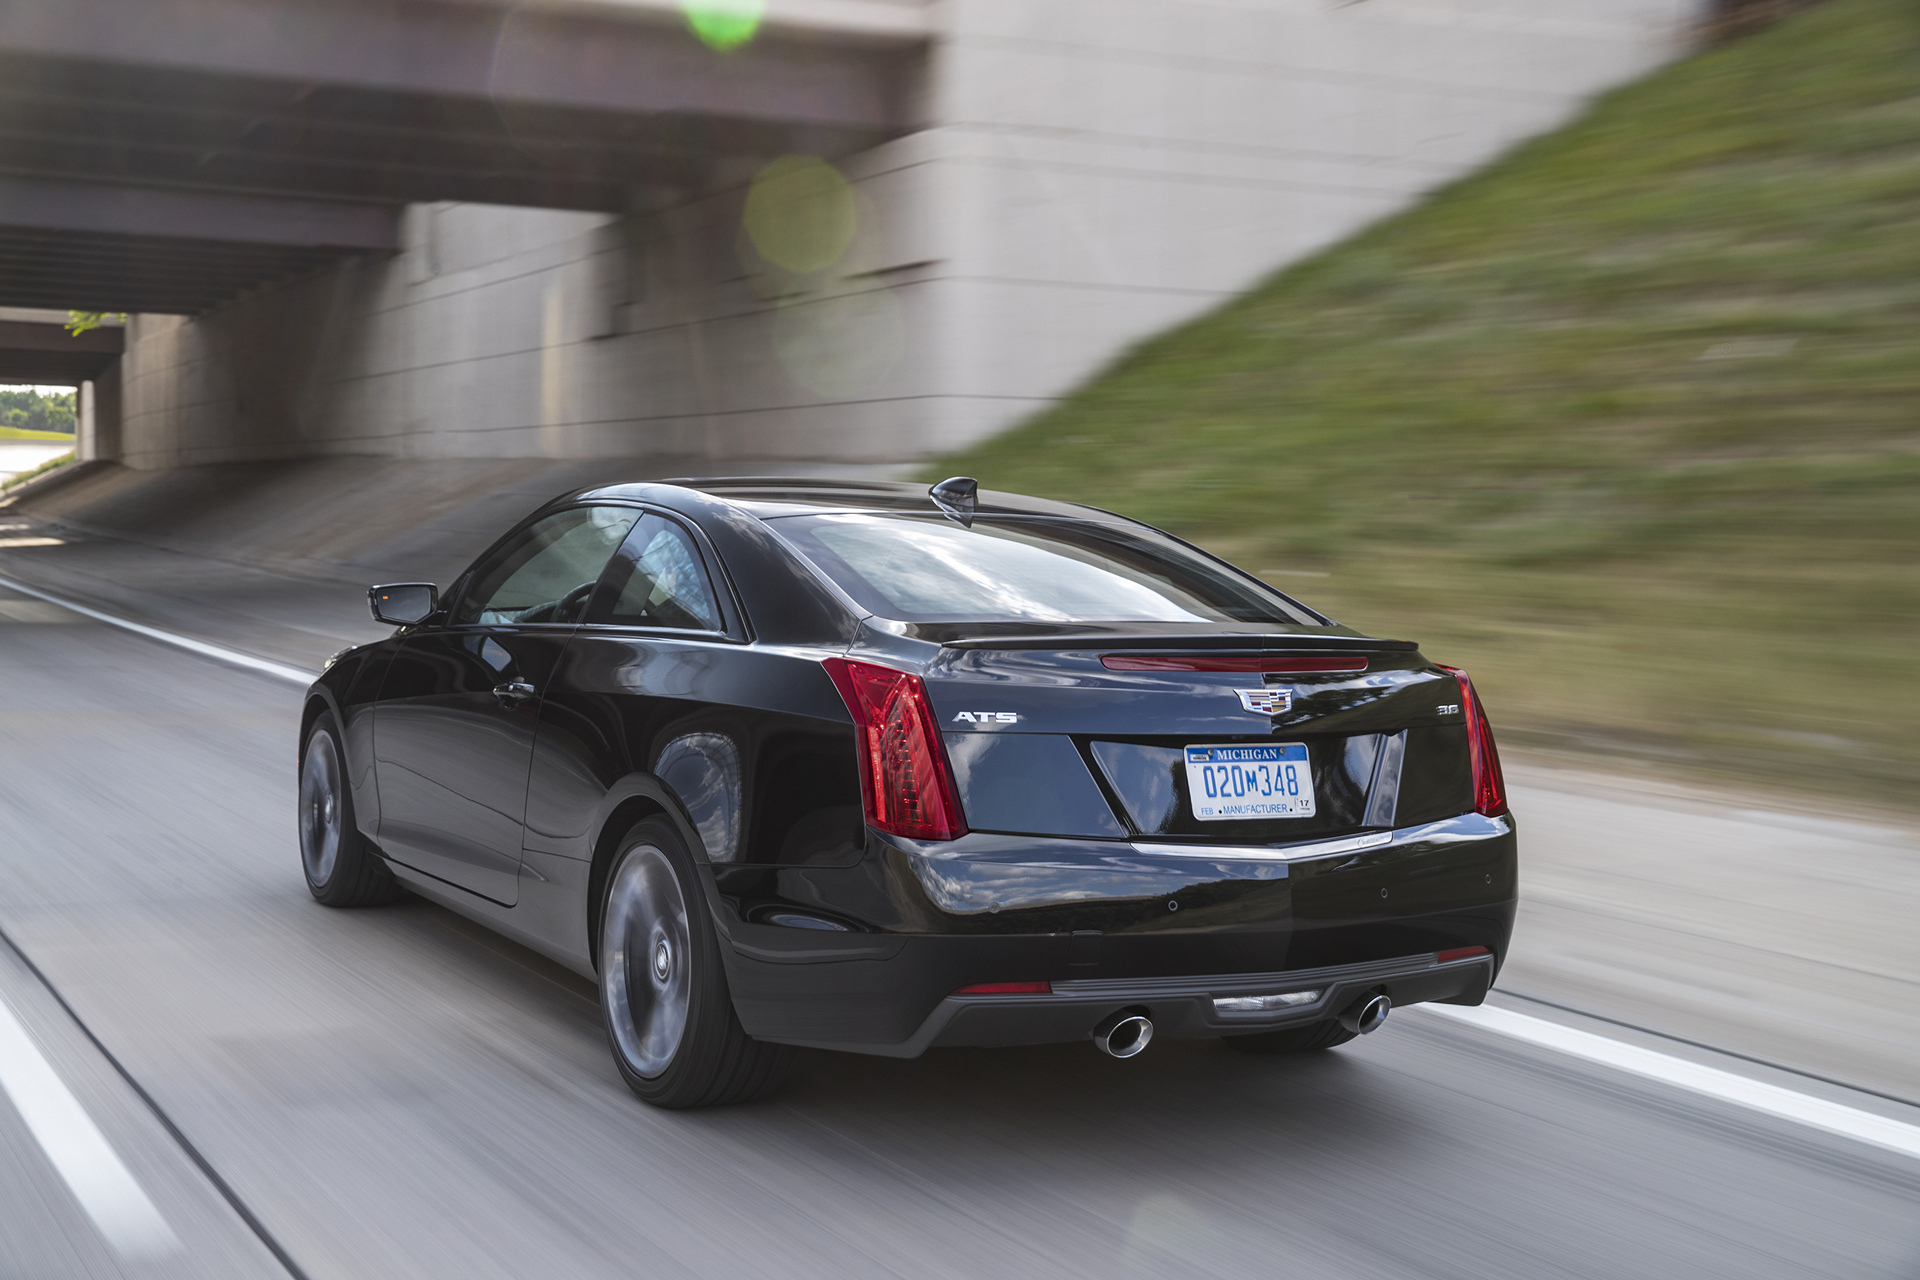 2017 Cadillac ATS © General Motors